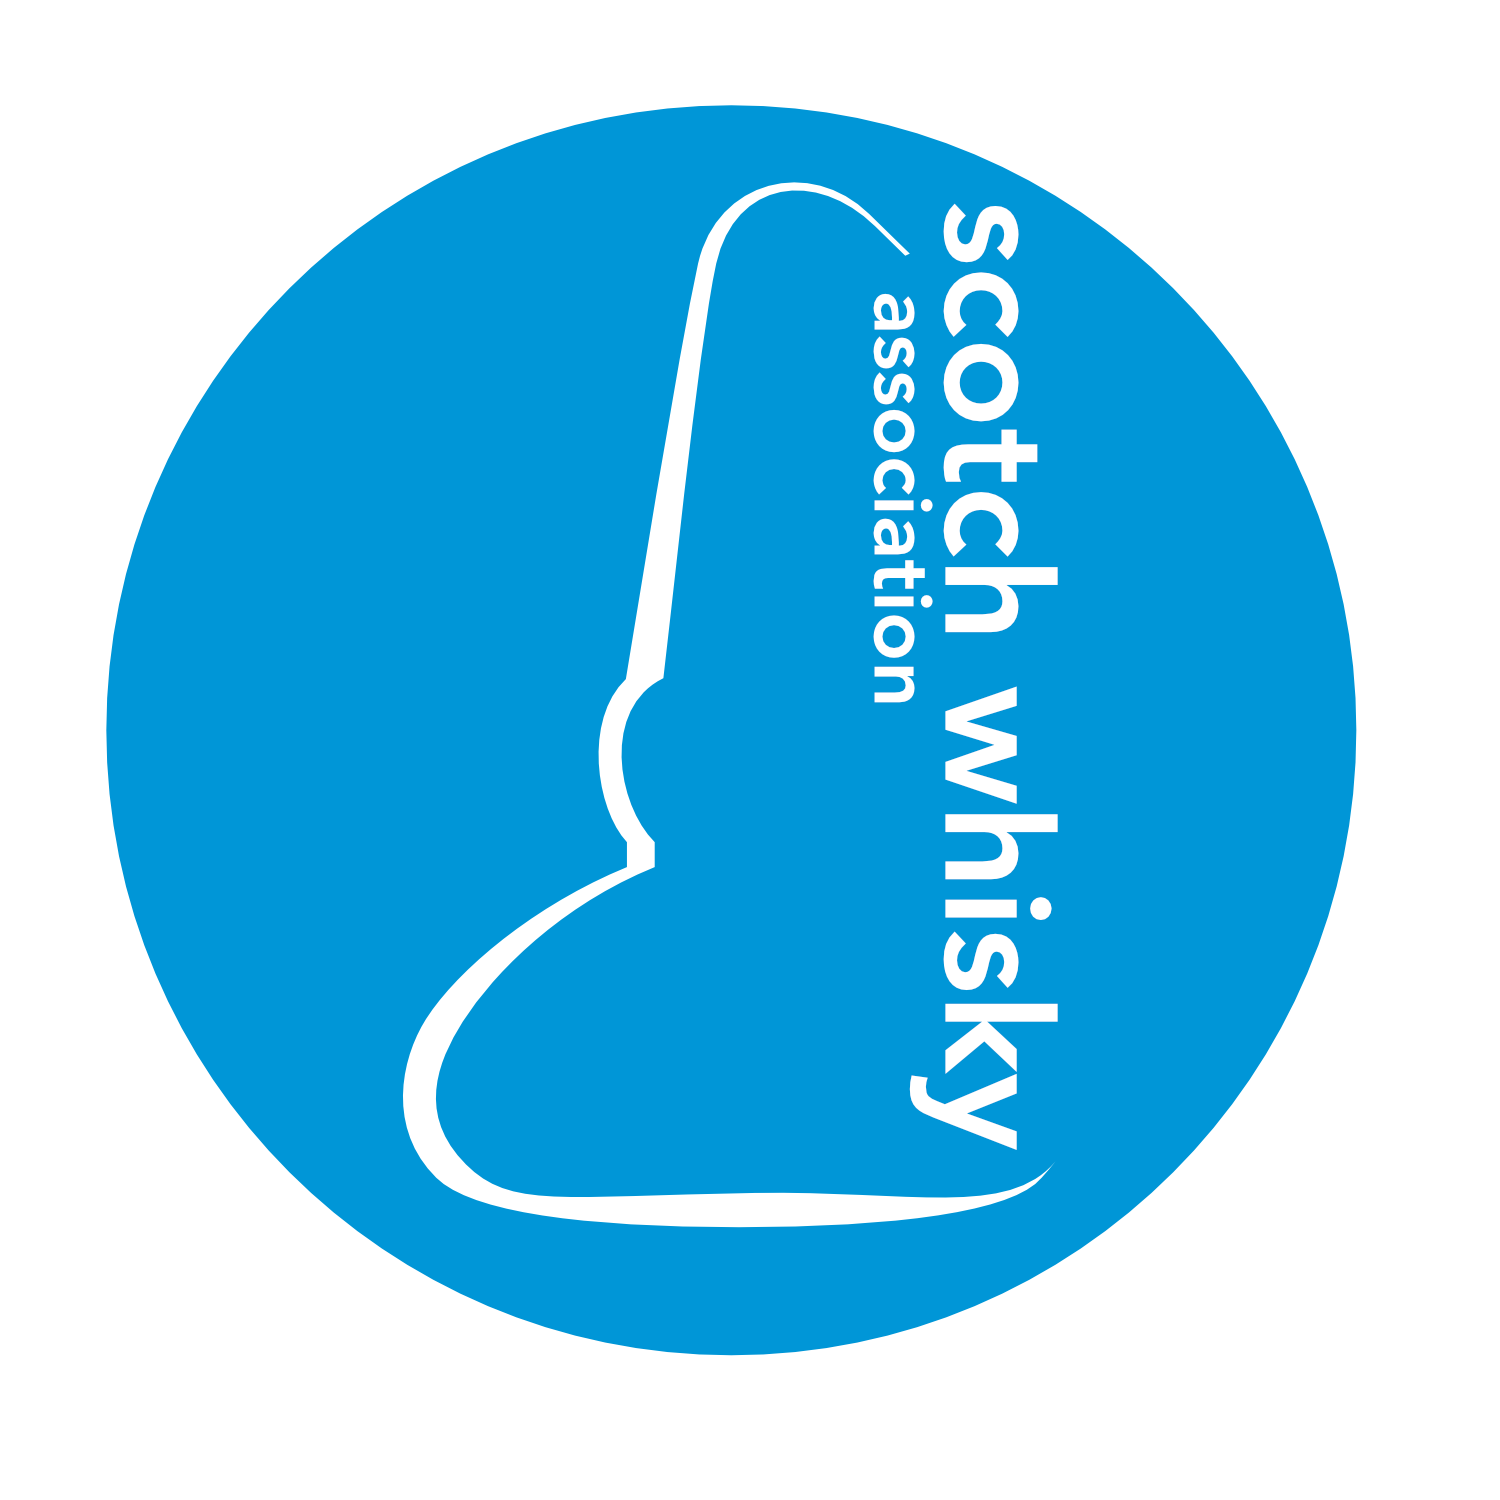 swa-logo-blue-new-and-large-png